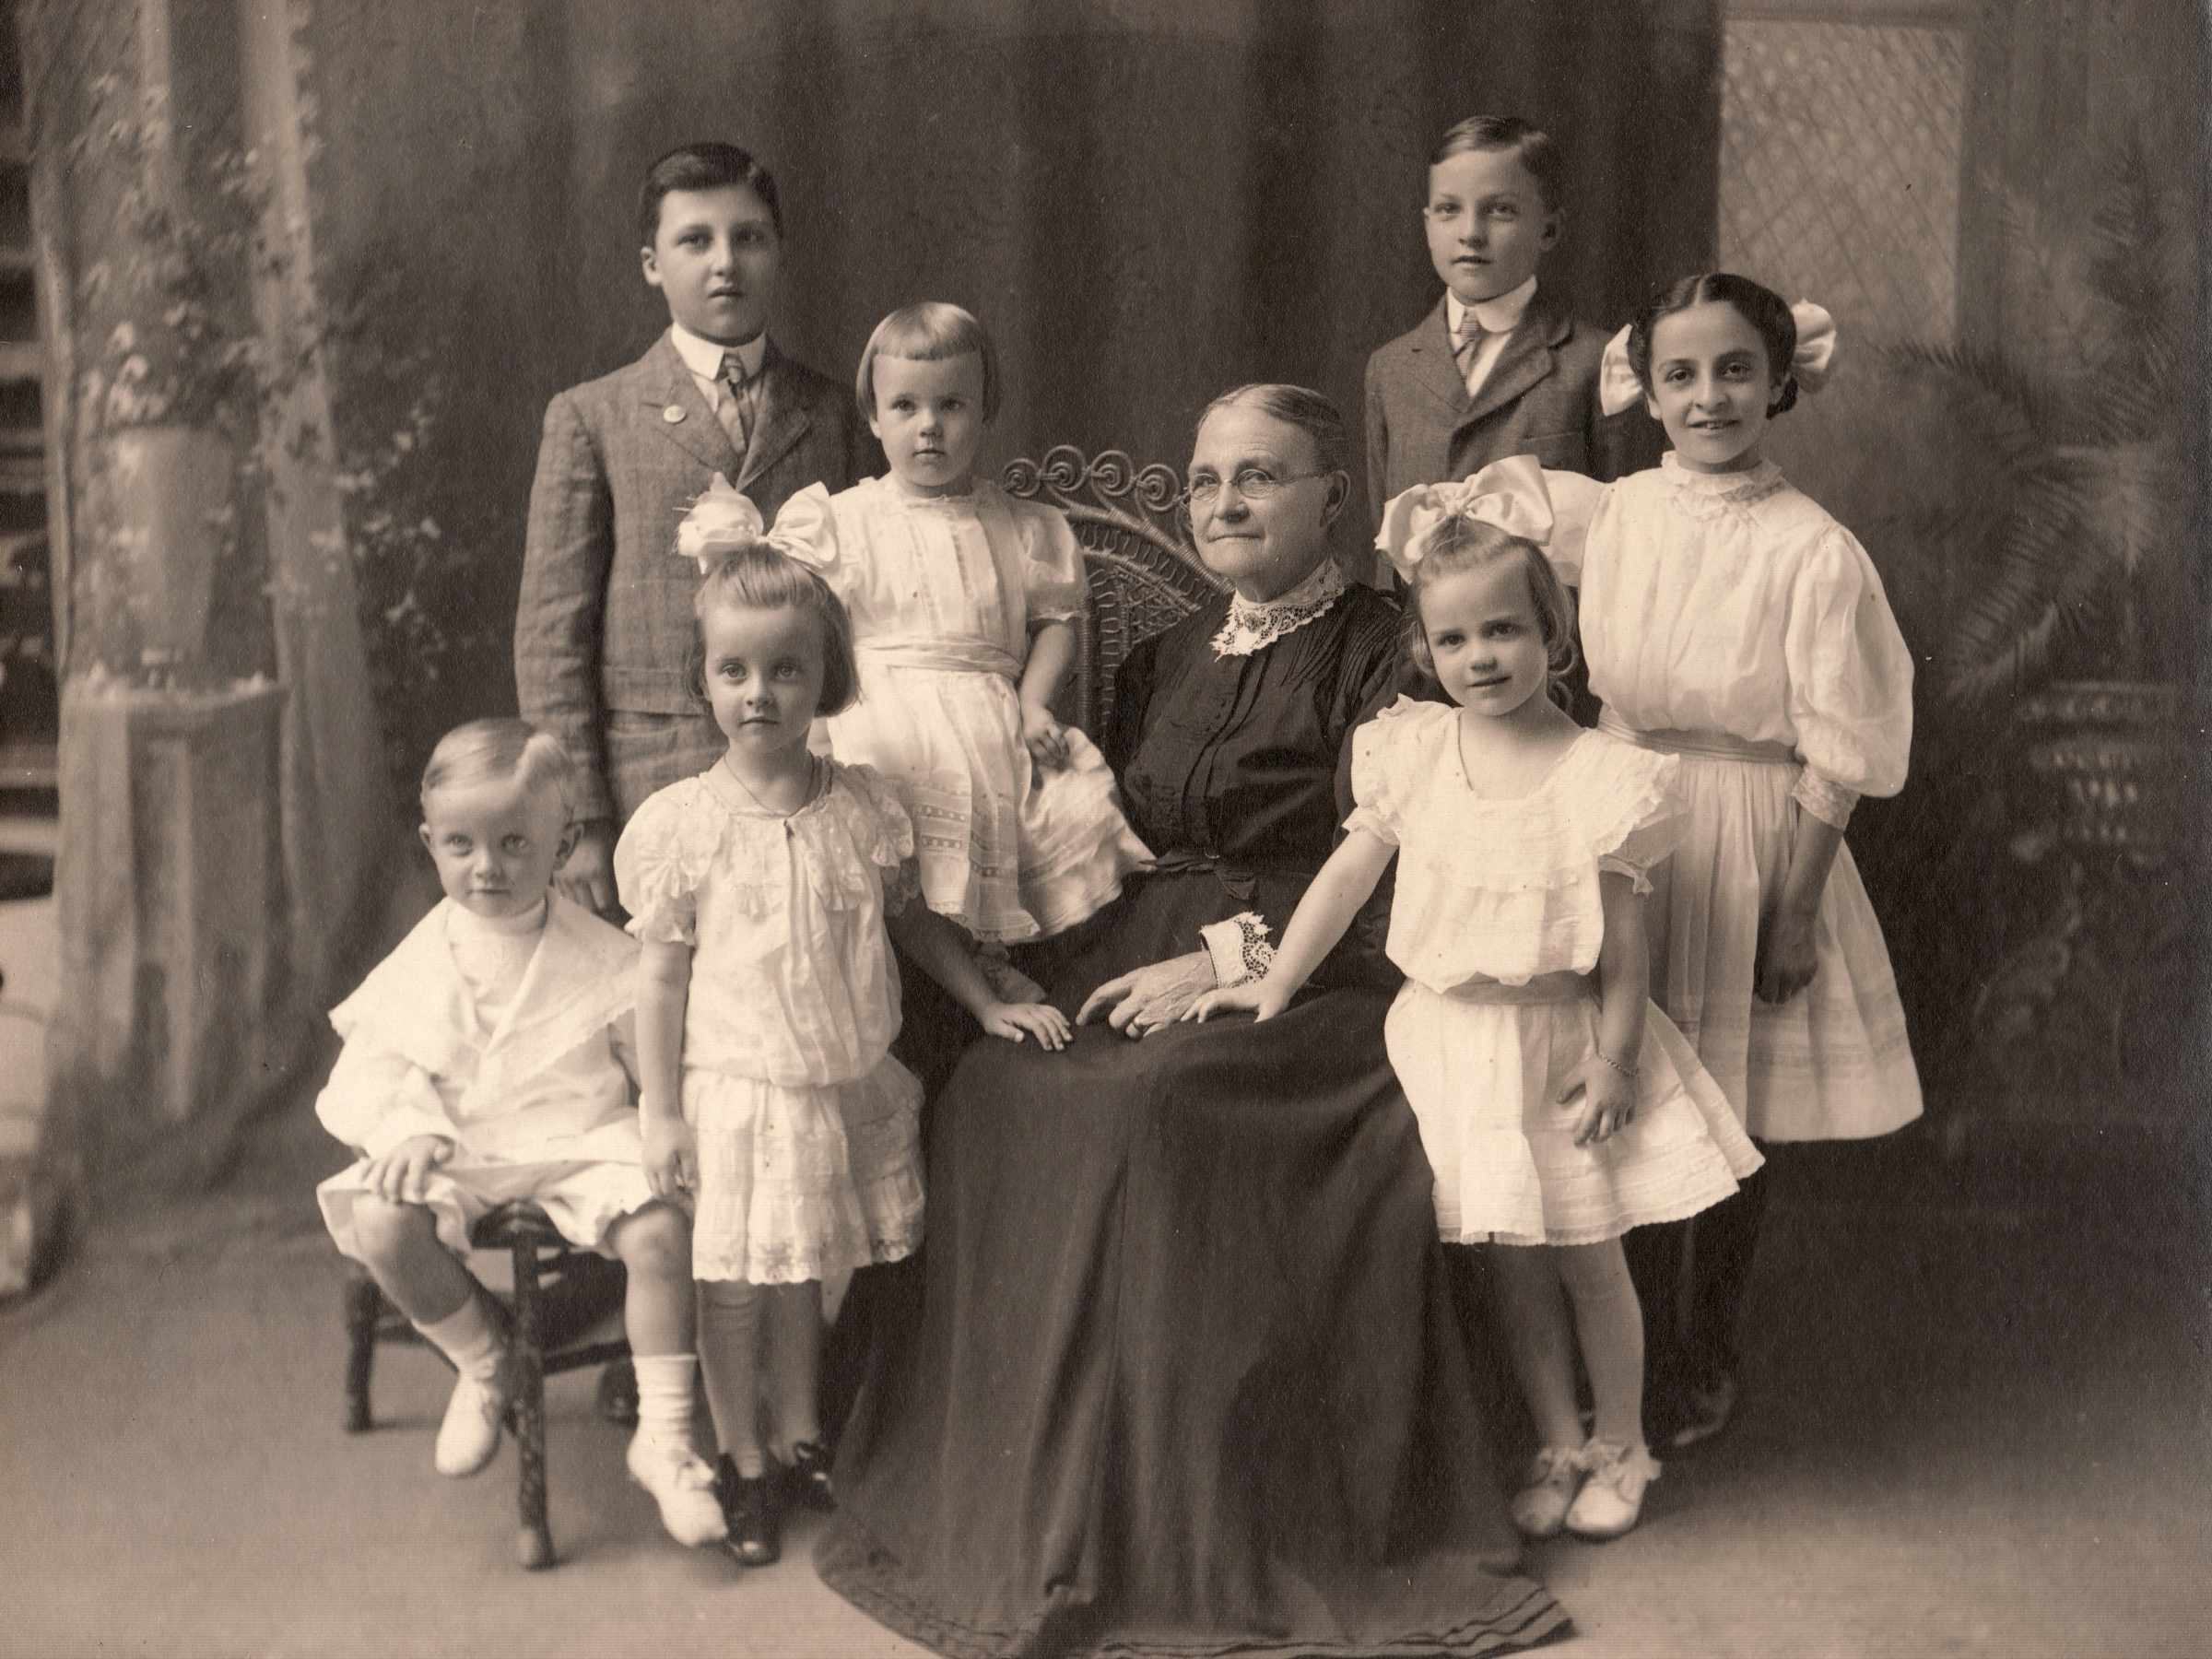 Abigail (Woods) Hoge with her grandchildren